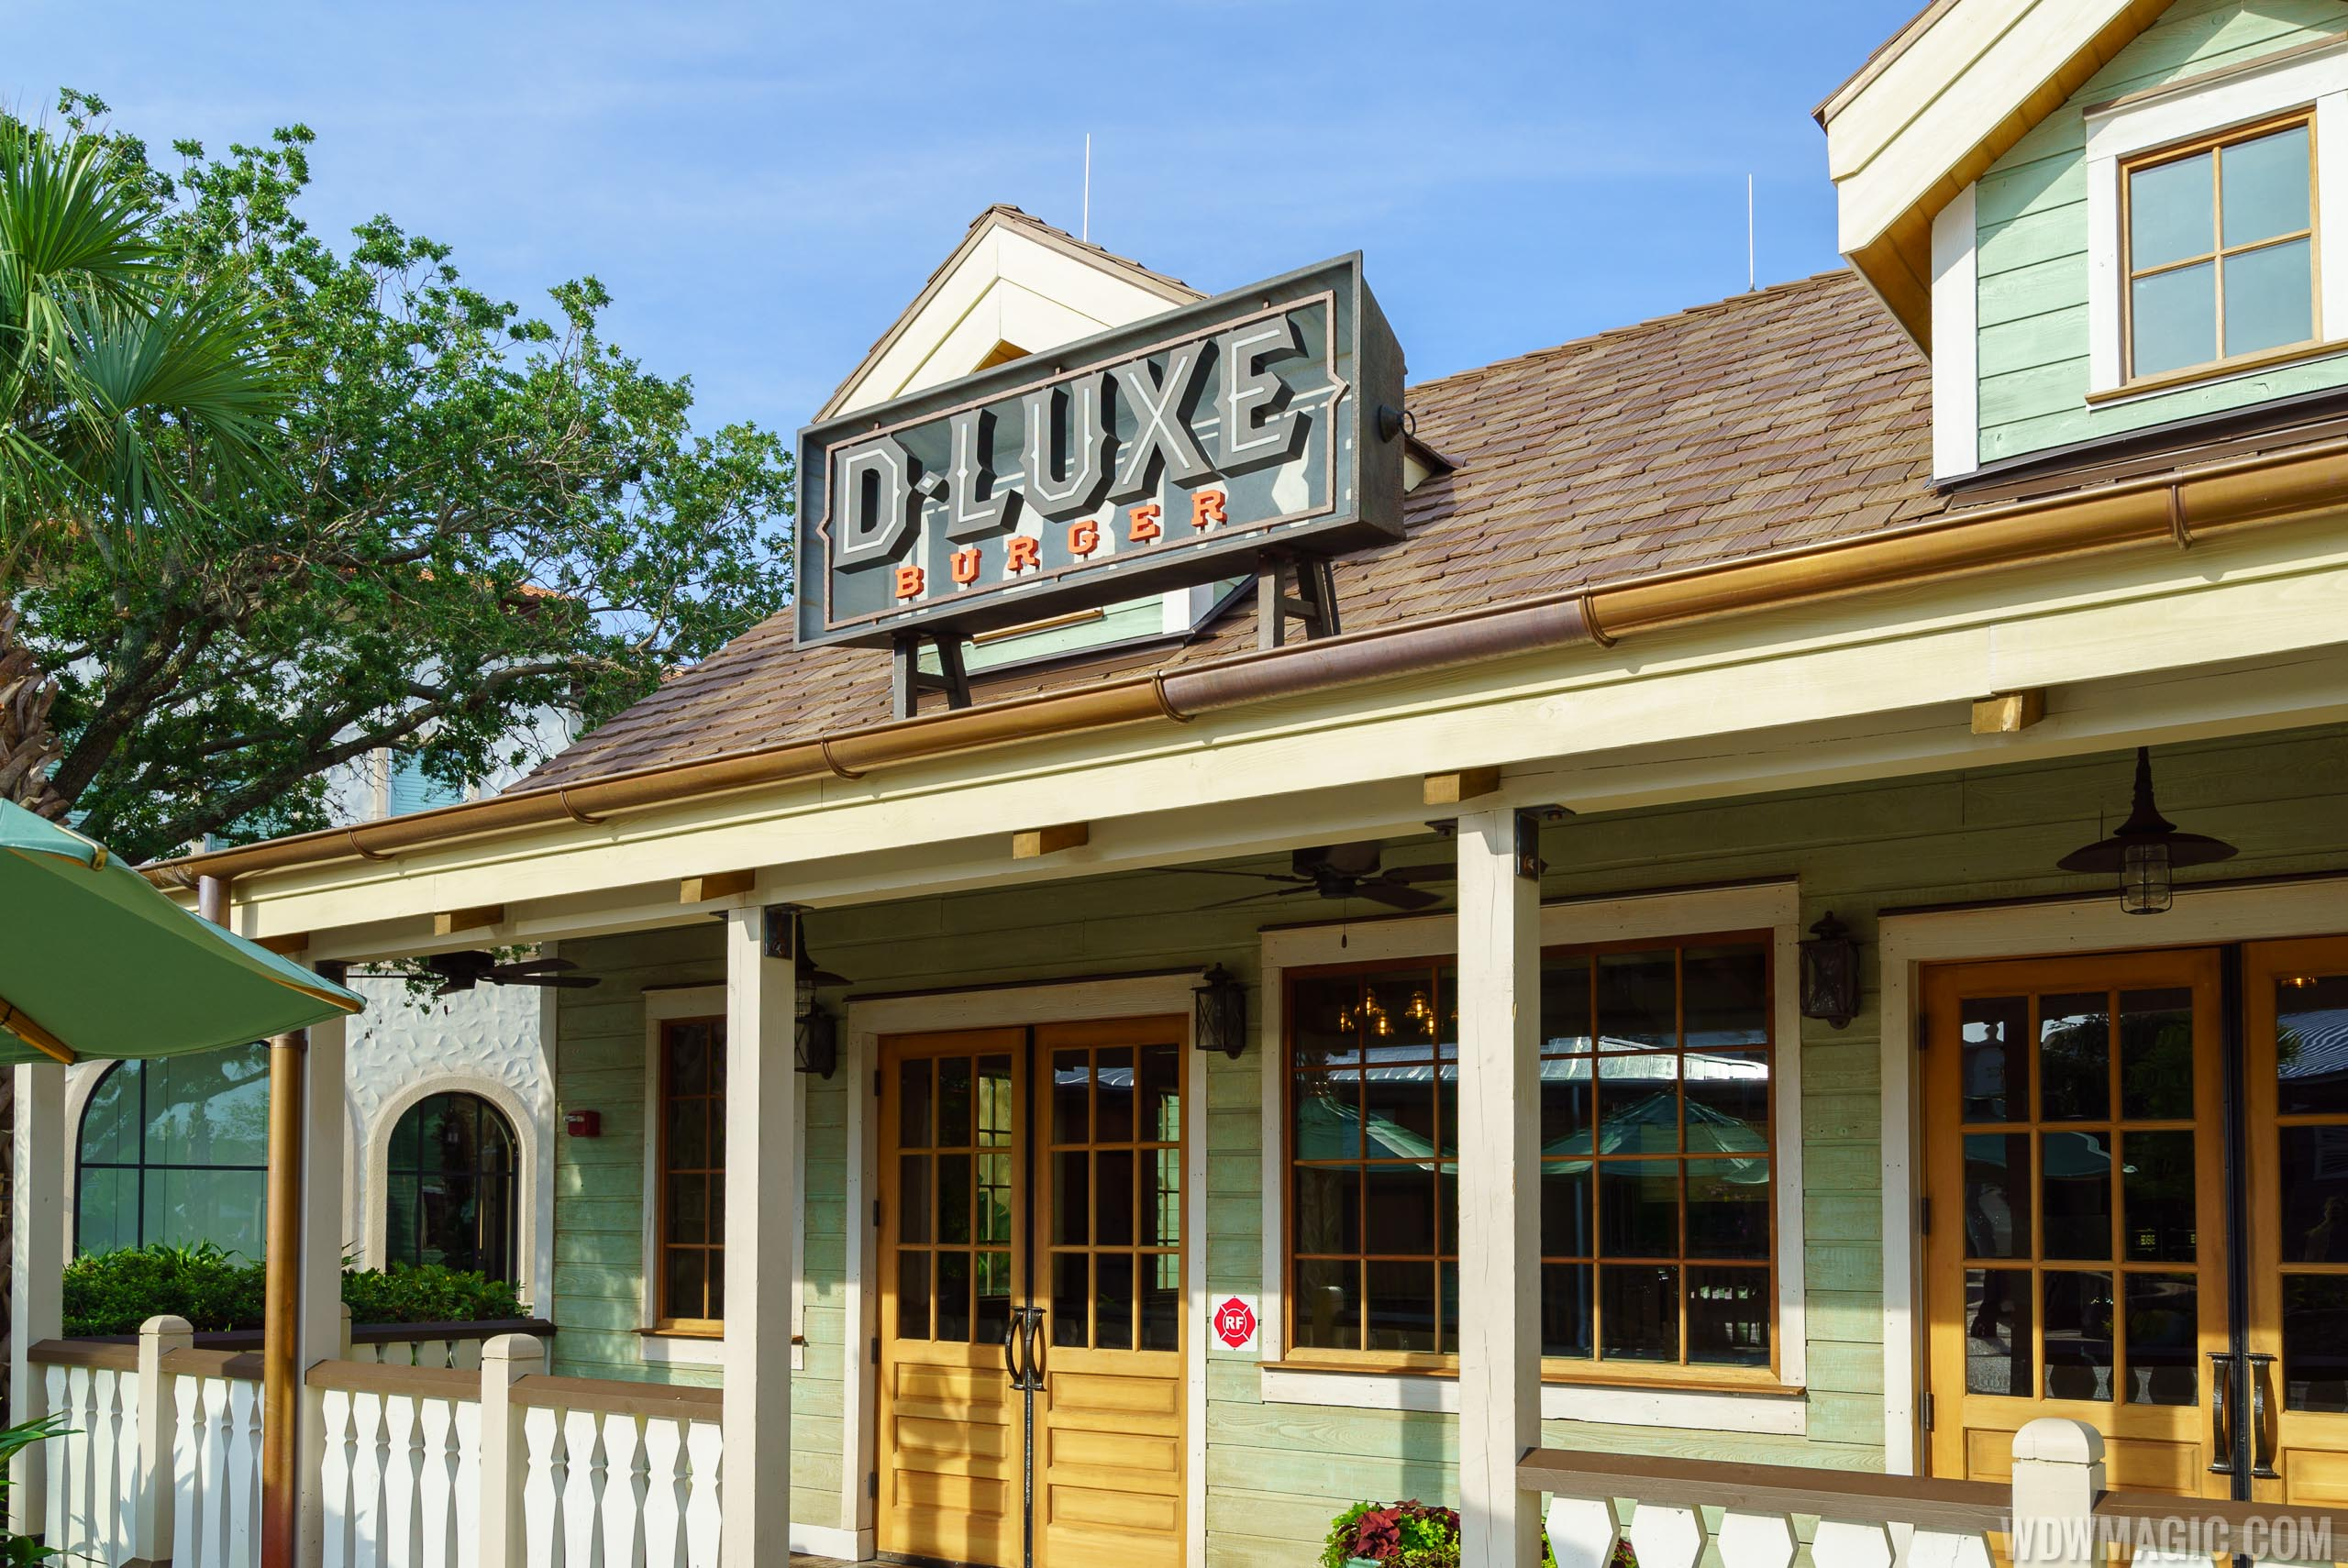 D-Luxe Burger overview